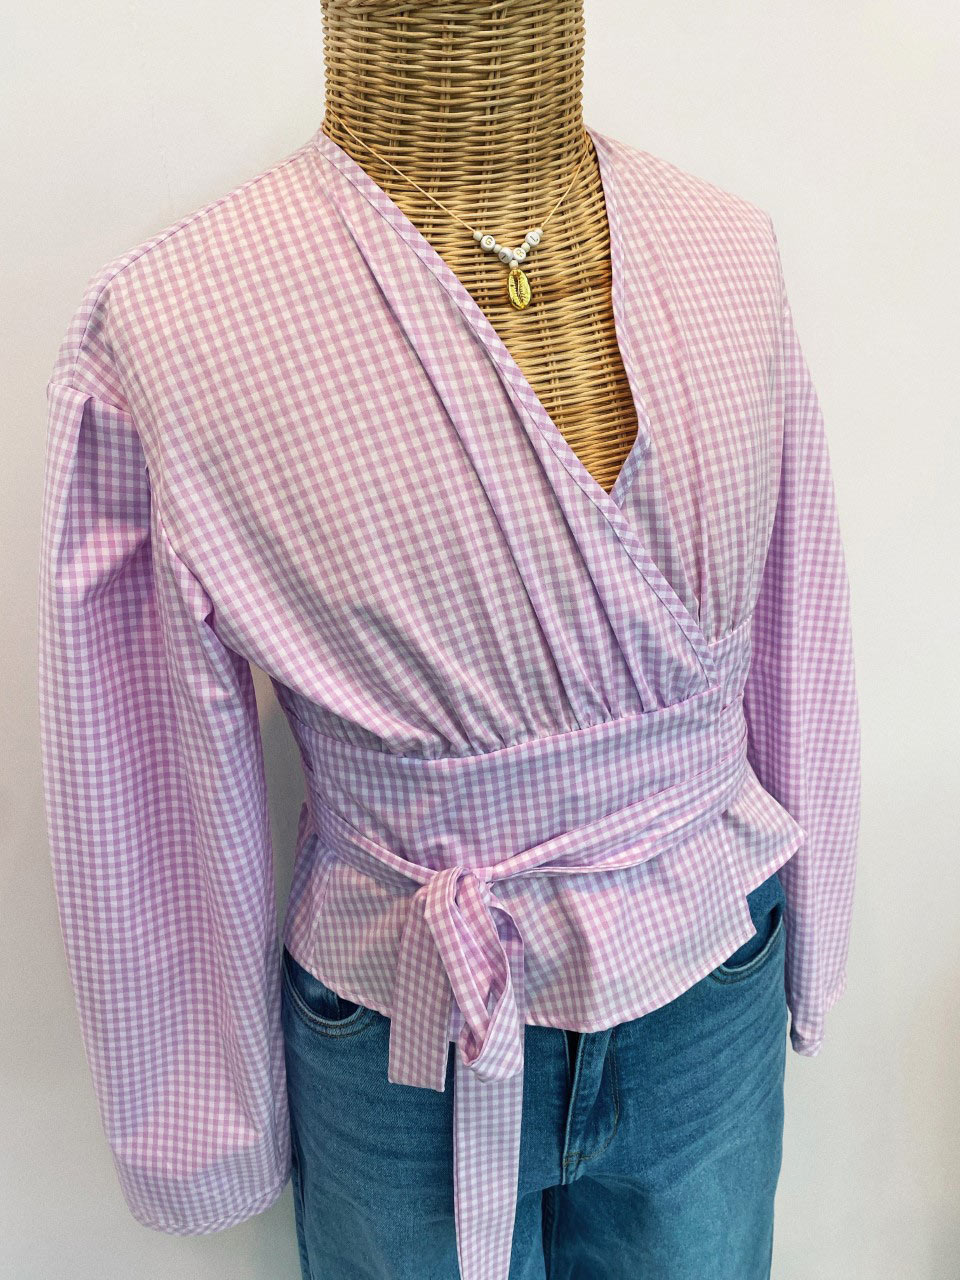 fitting doll with a lilac checked top and denim pants